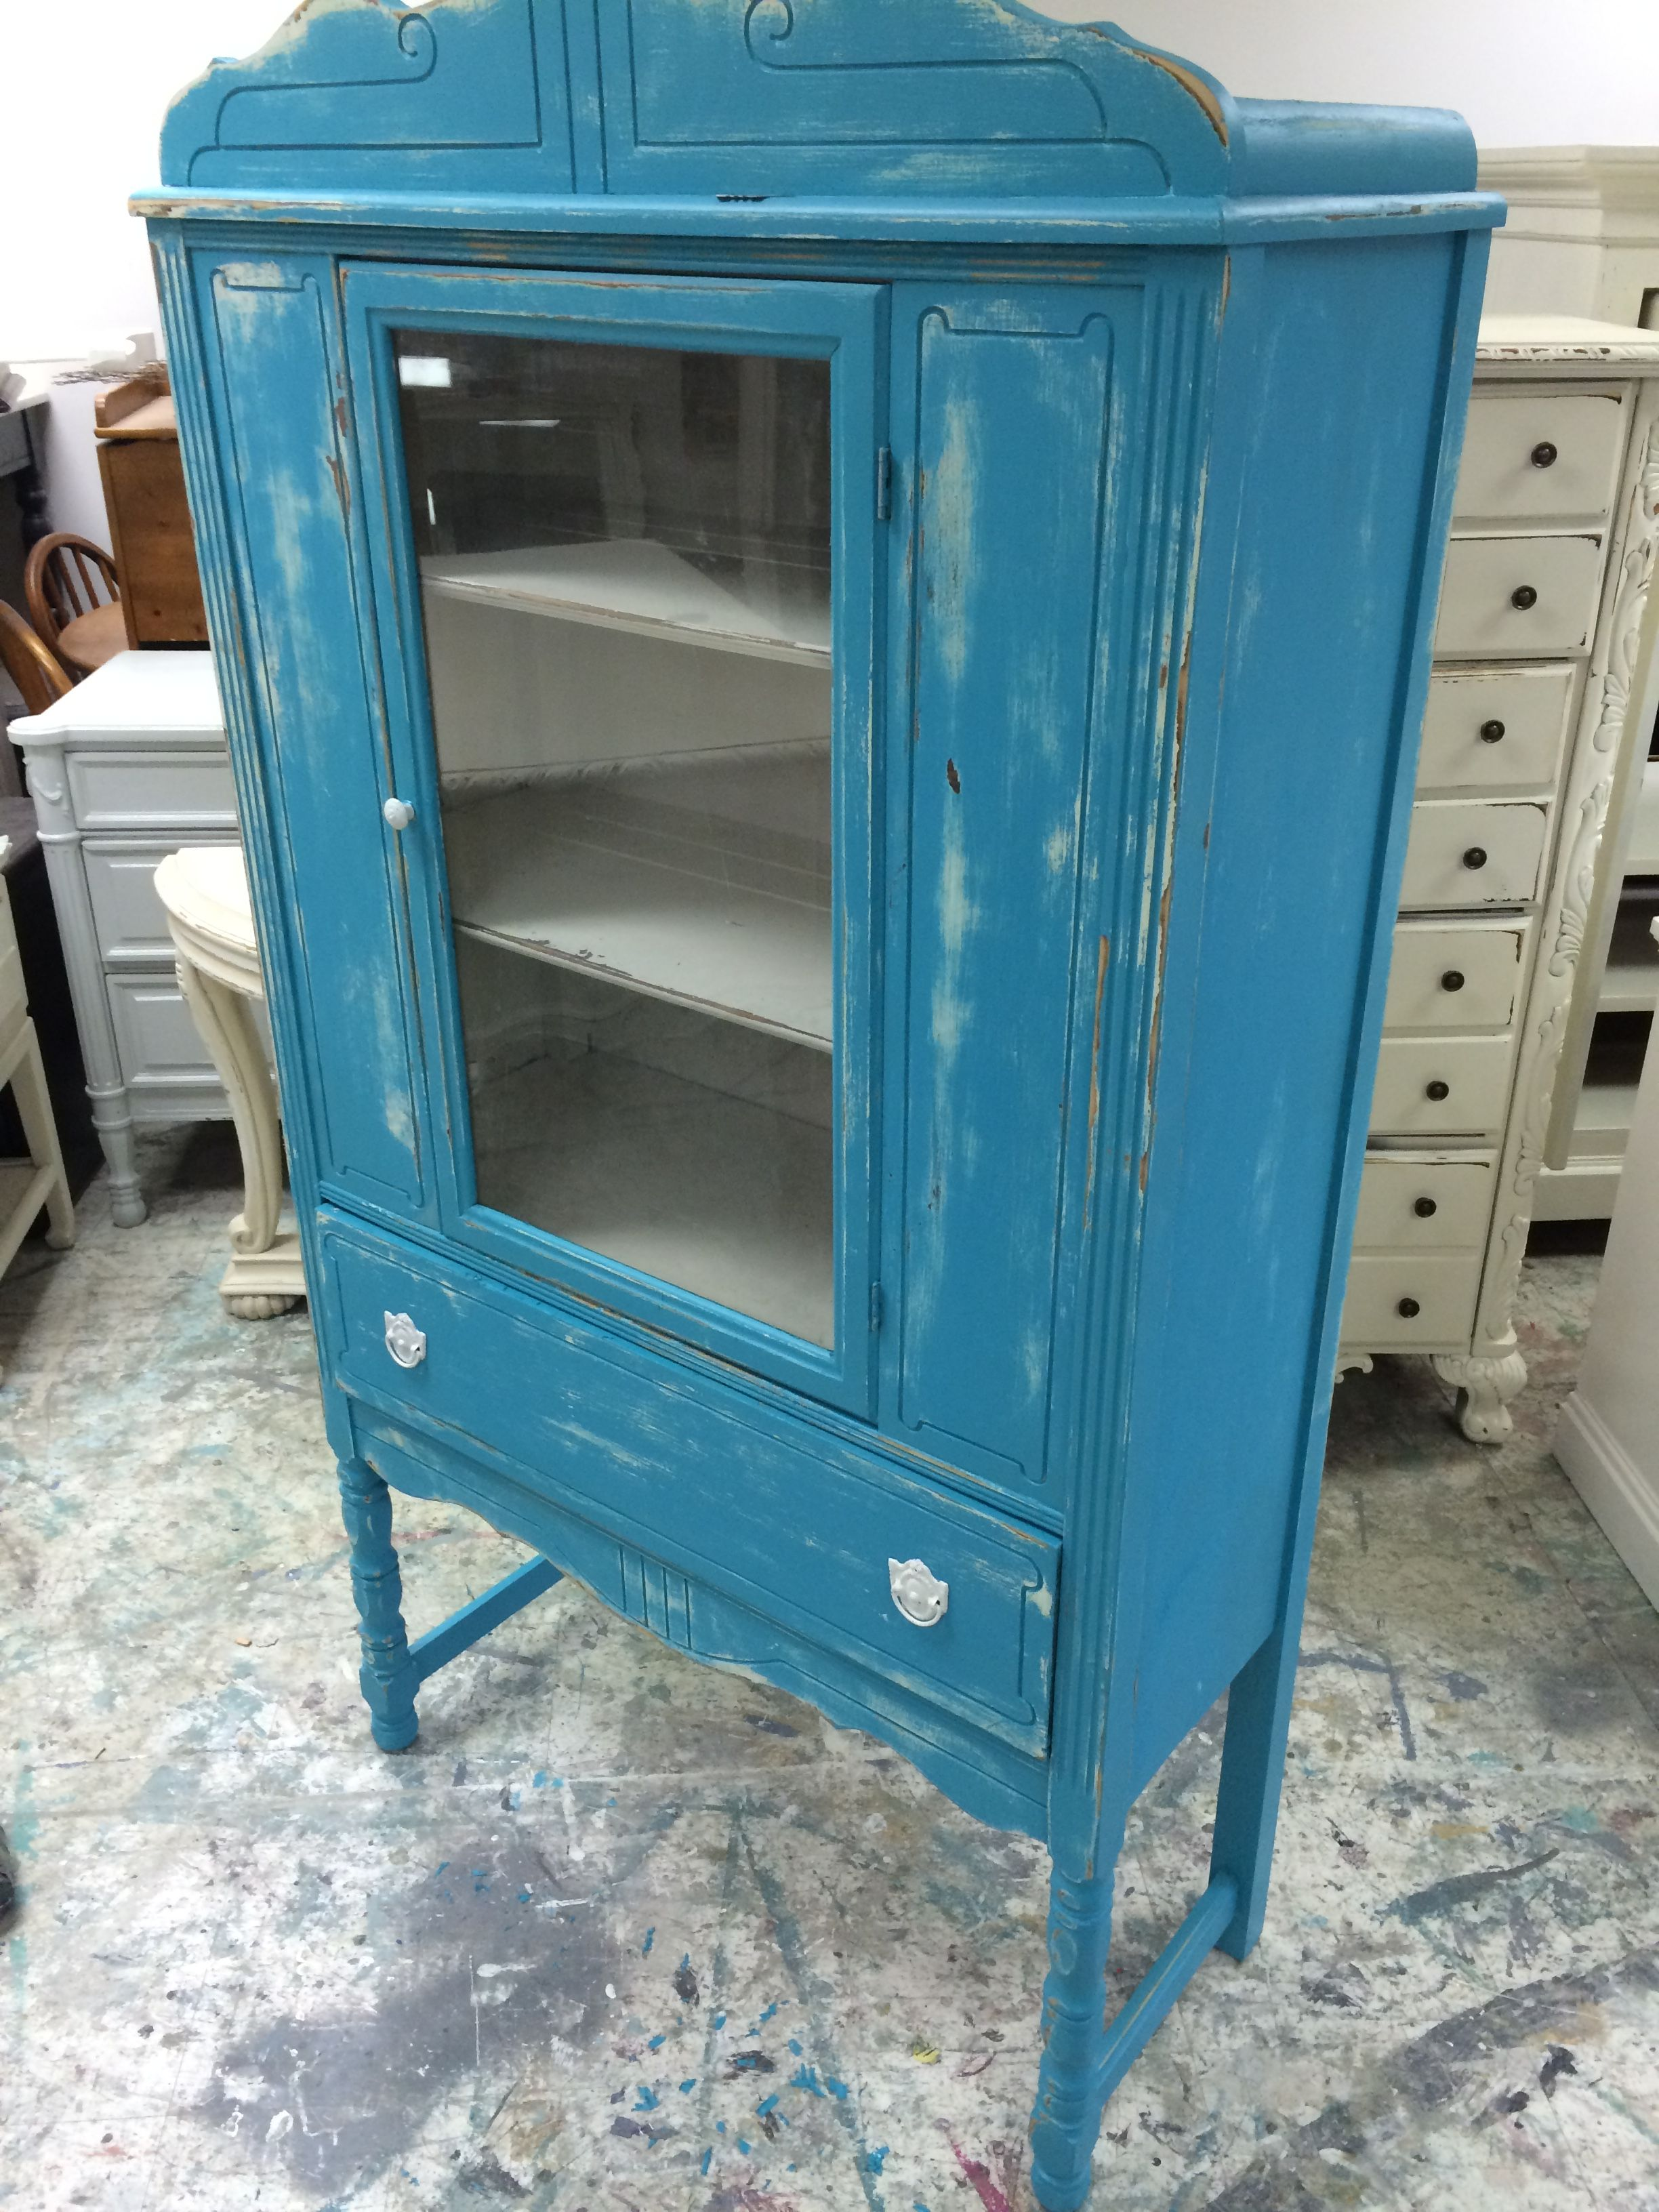 I can see this cabinet as very versatile. You could use it ...